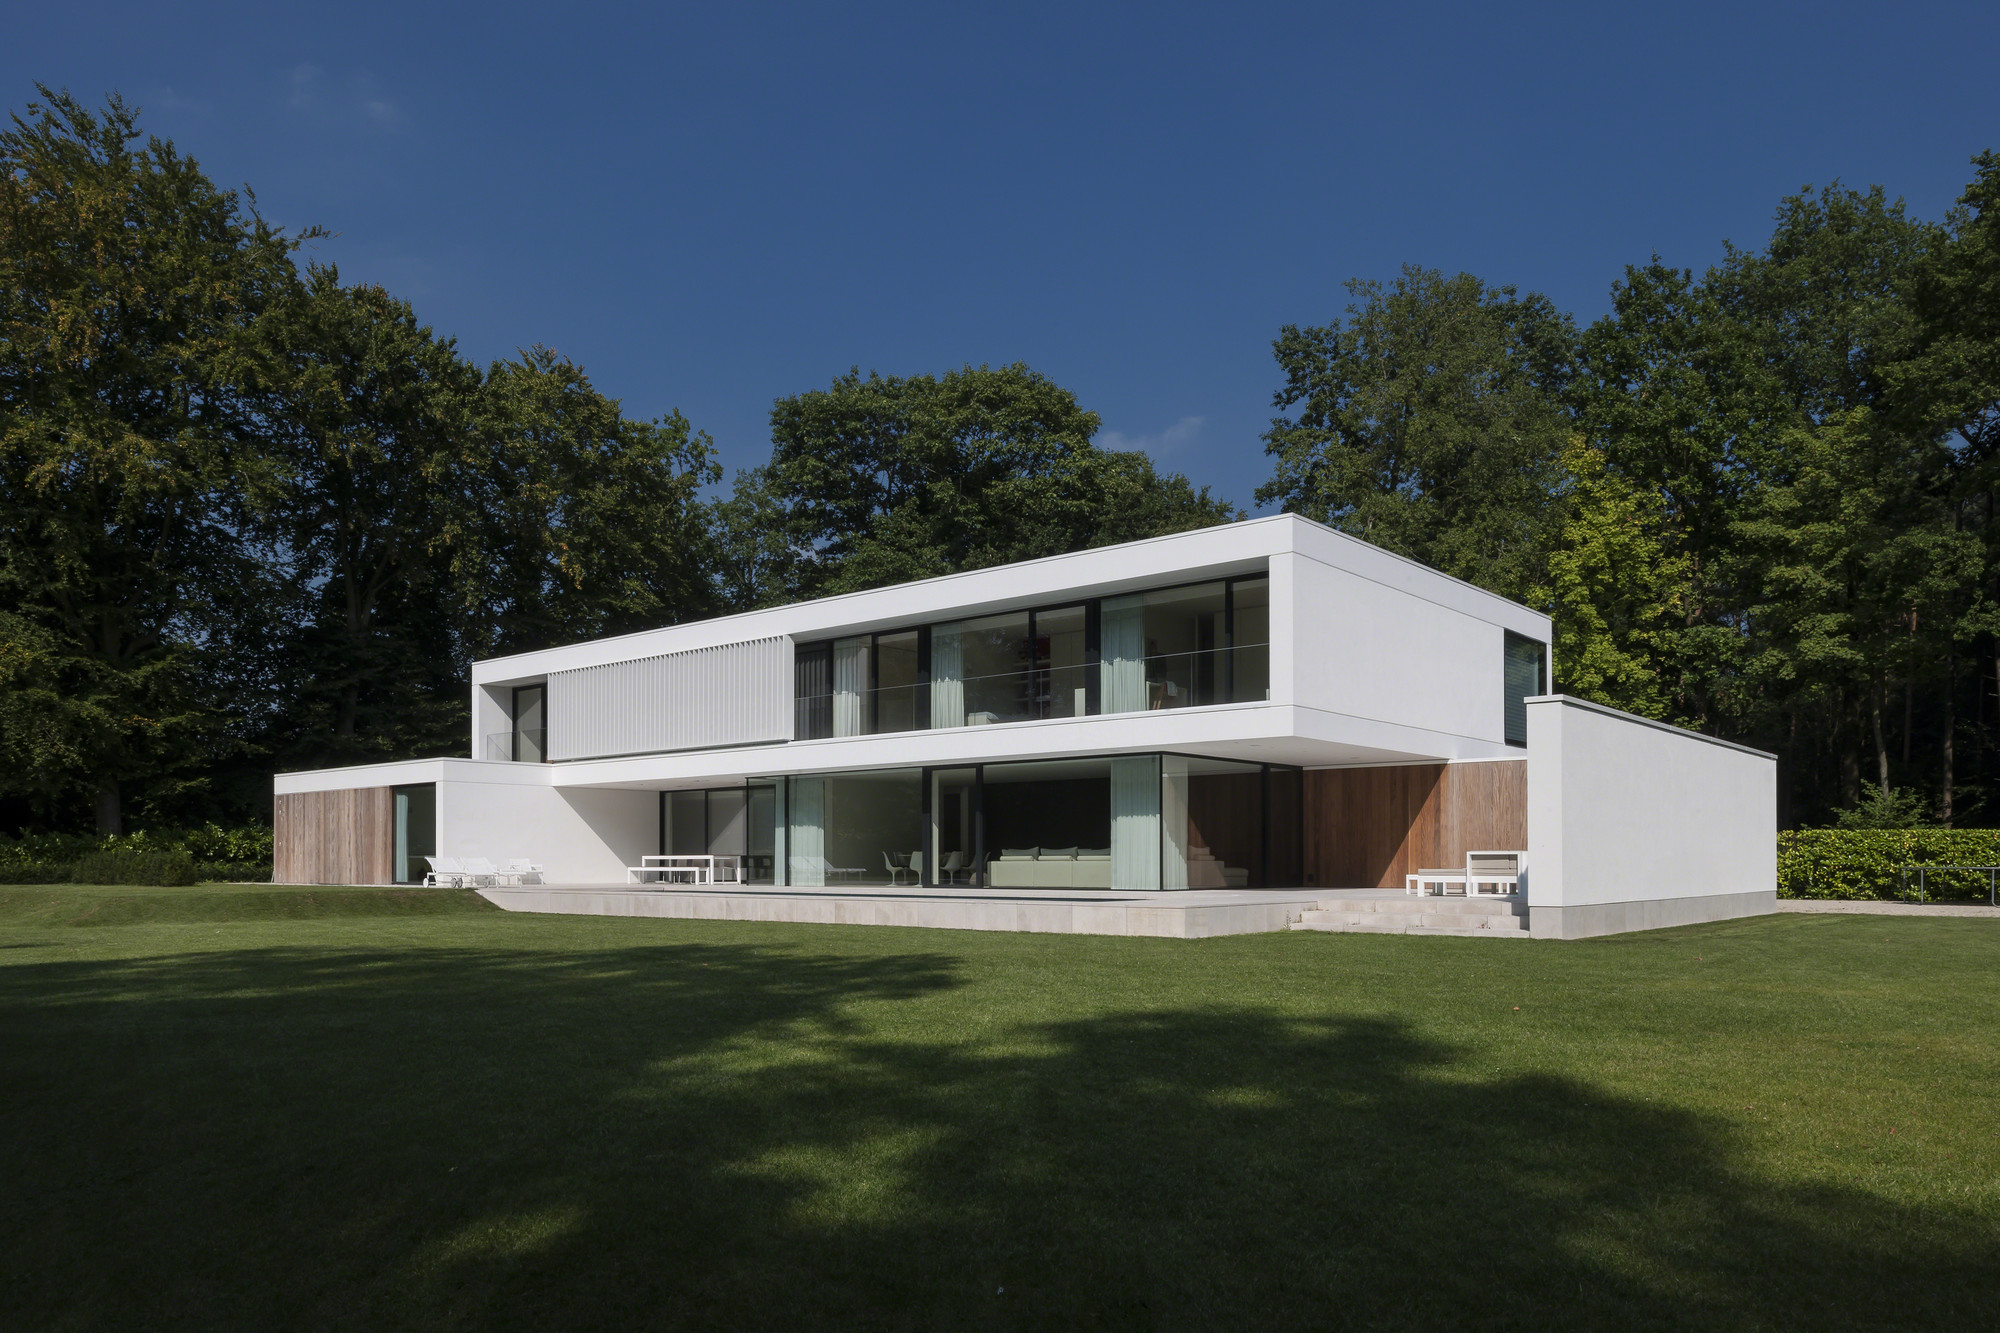 Hs residence cubyc architects archdaily for Cabanes de jardin belgique